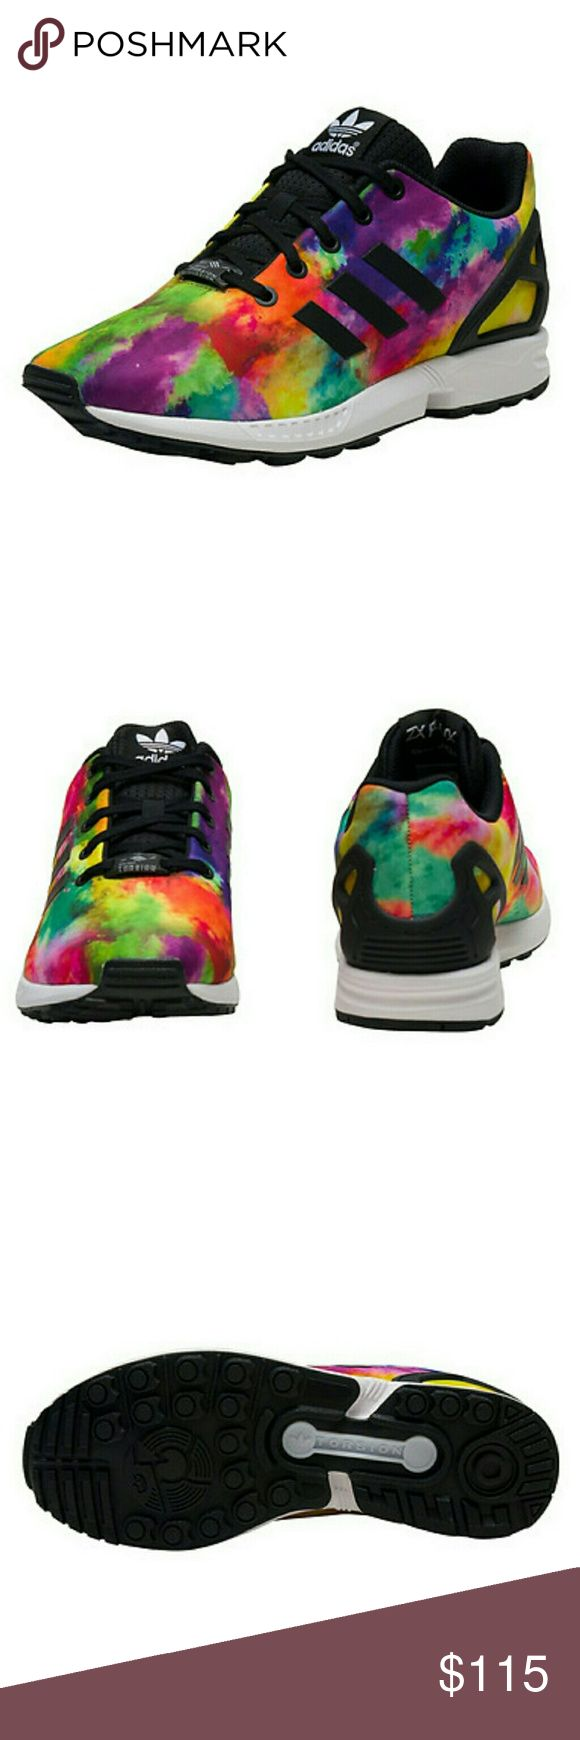 NWOB, Adidas ZX Flux Sneaker Multicolor ZX Flux sneaker  Kid's low top shoe  All-over tie dye printed synthetic upper  Padded tongue with adidas logo branding detail  Triple adidas stripes on sides  adidad Torsion sole technology for ultimate performance  Traction rubber outsole FABRIC: Synthetic materials Brand new, without box. Perfect condition!! adidas Shoes